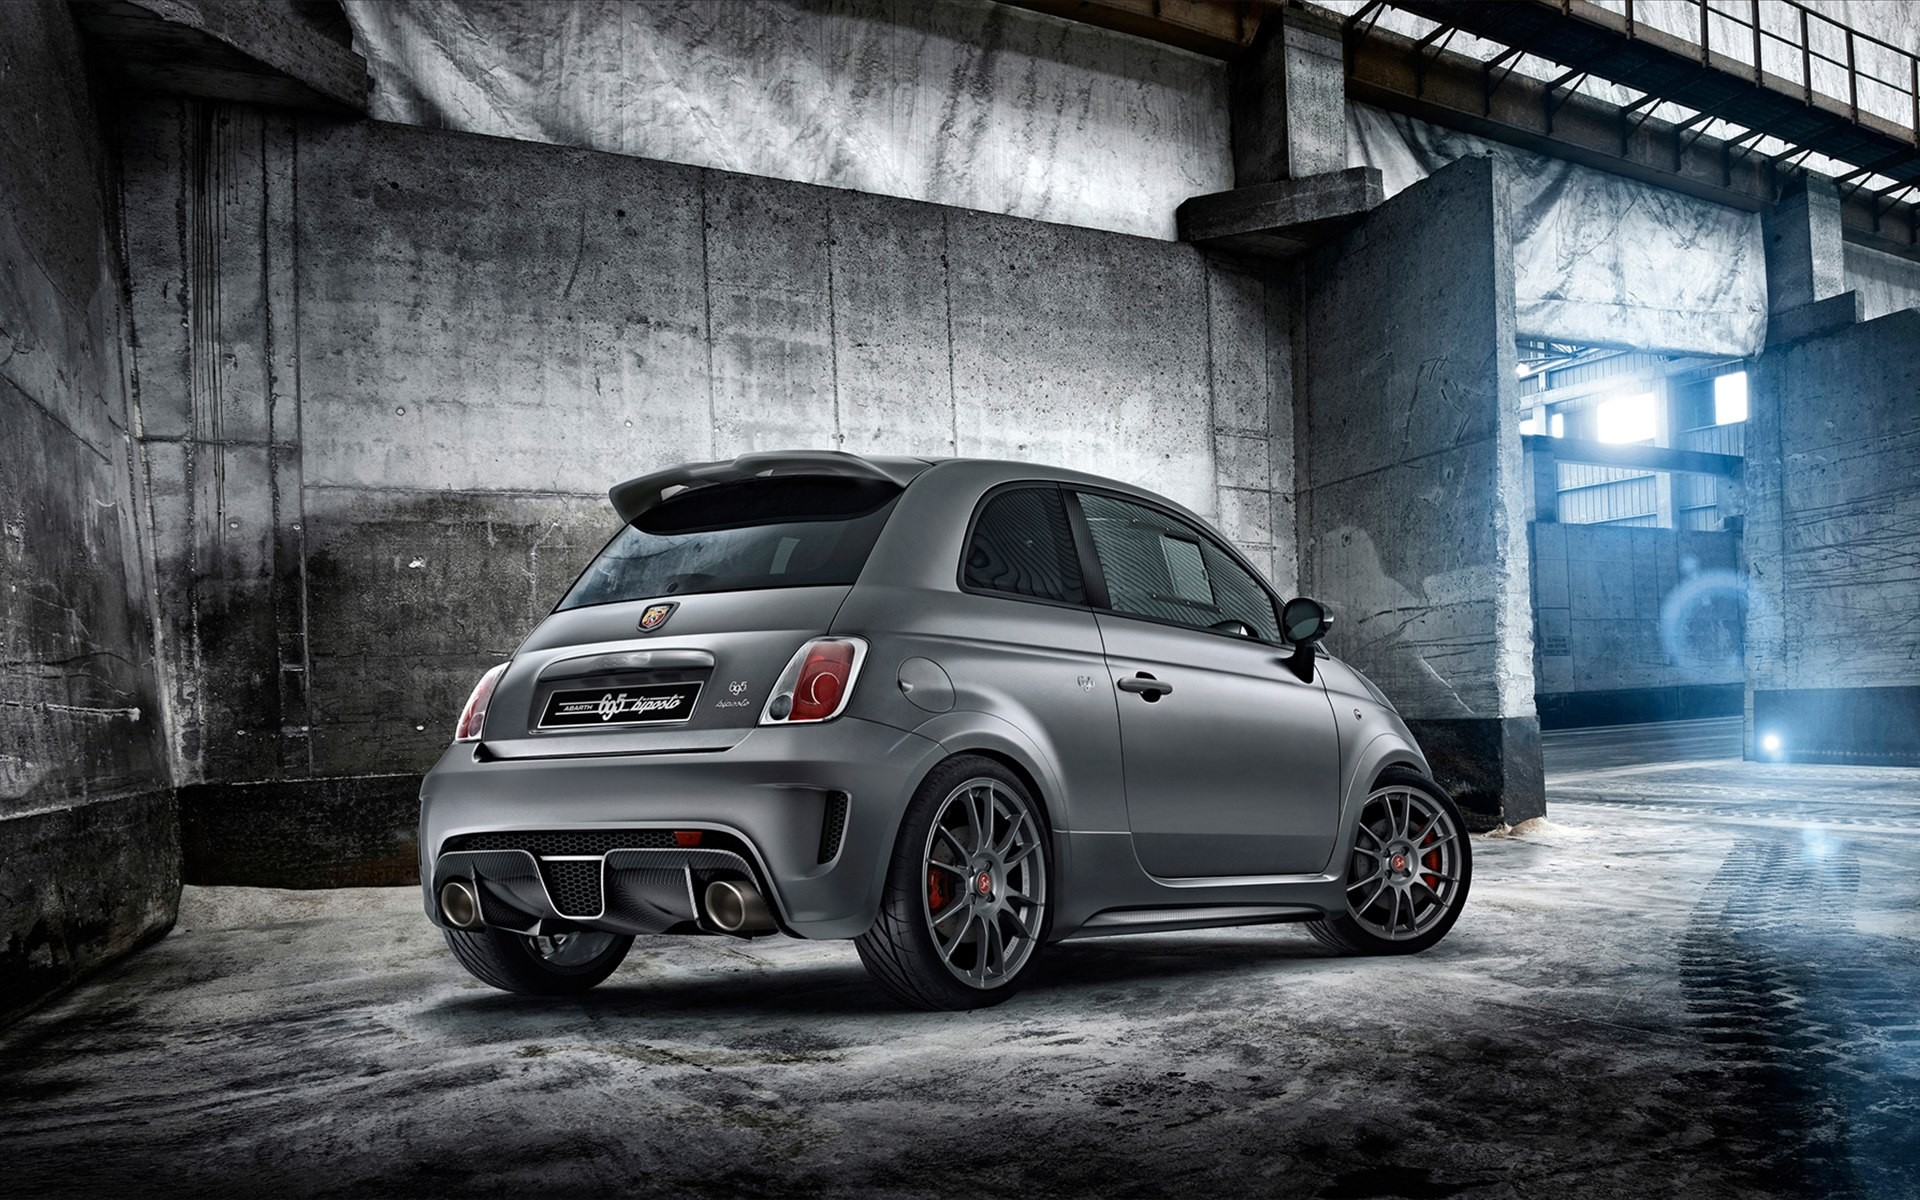 2014 fiat abarth 695 biposto 2 wallpaper hd car wallpapers id 4392. Black Bedroom Furniture Sets. Home Design Ideas